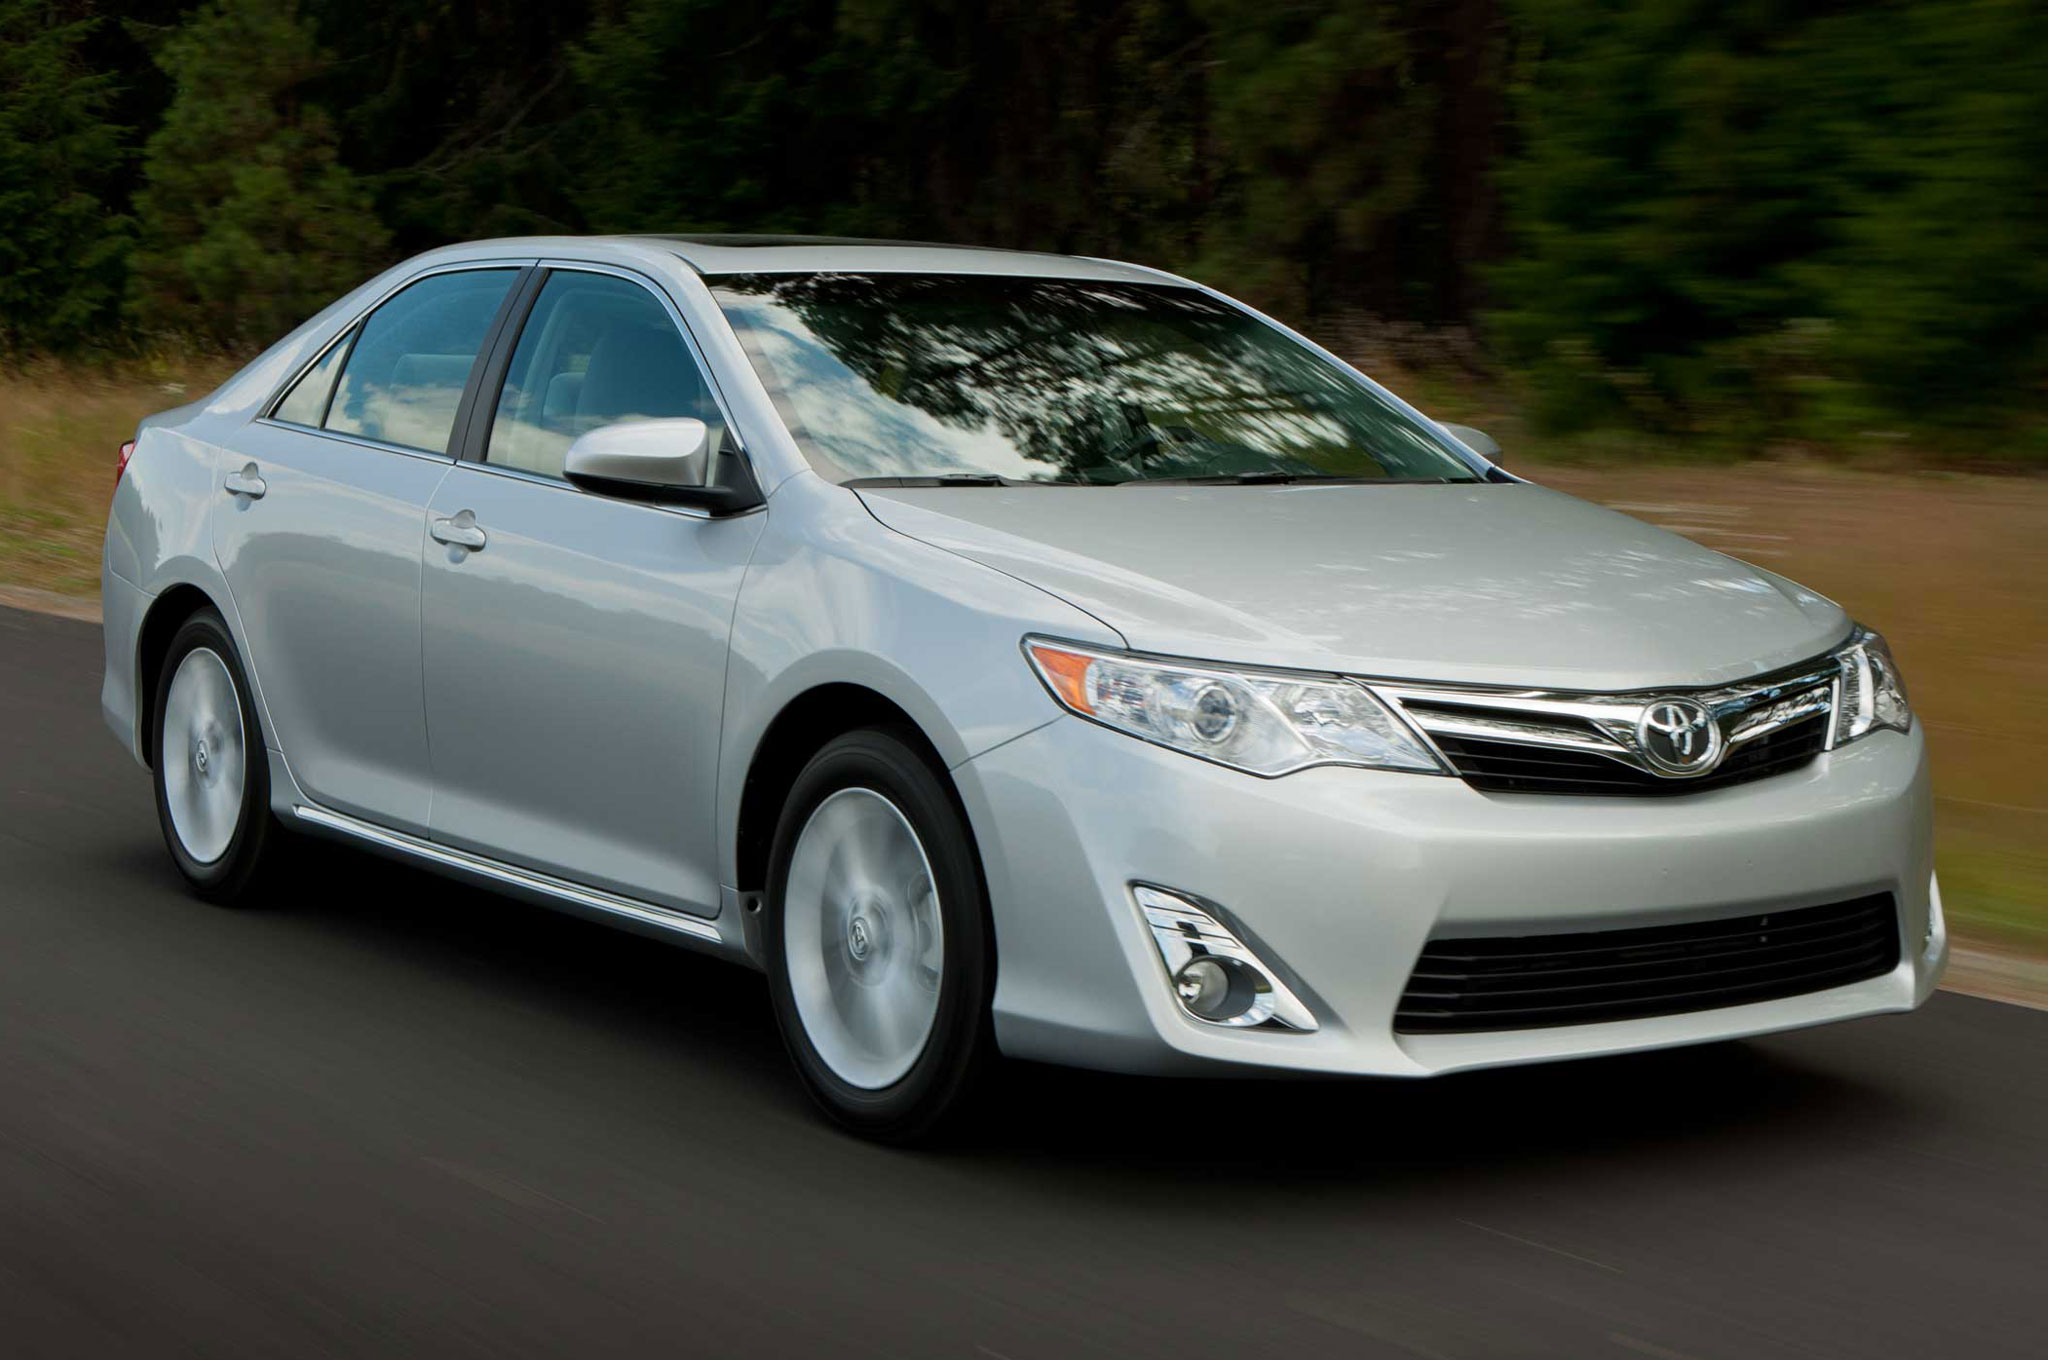 2013 Toyota Camry Front Three Quarter Silver